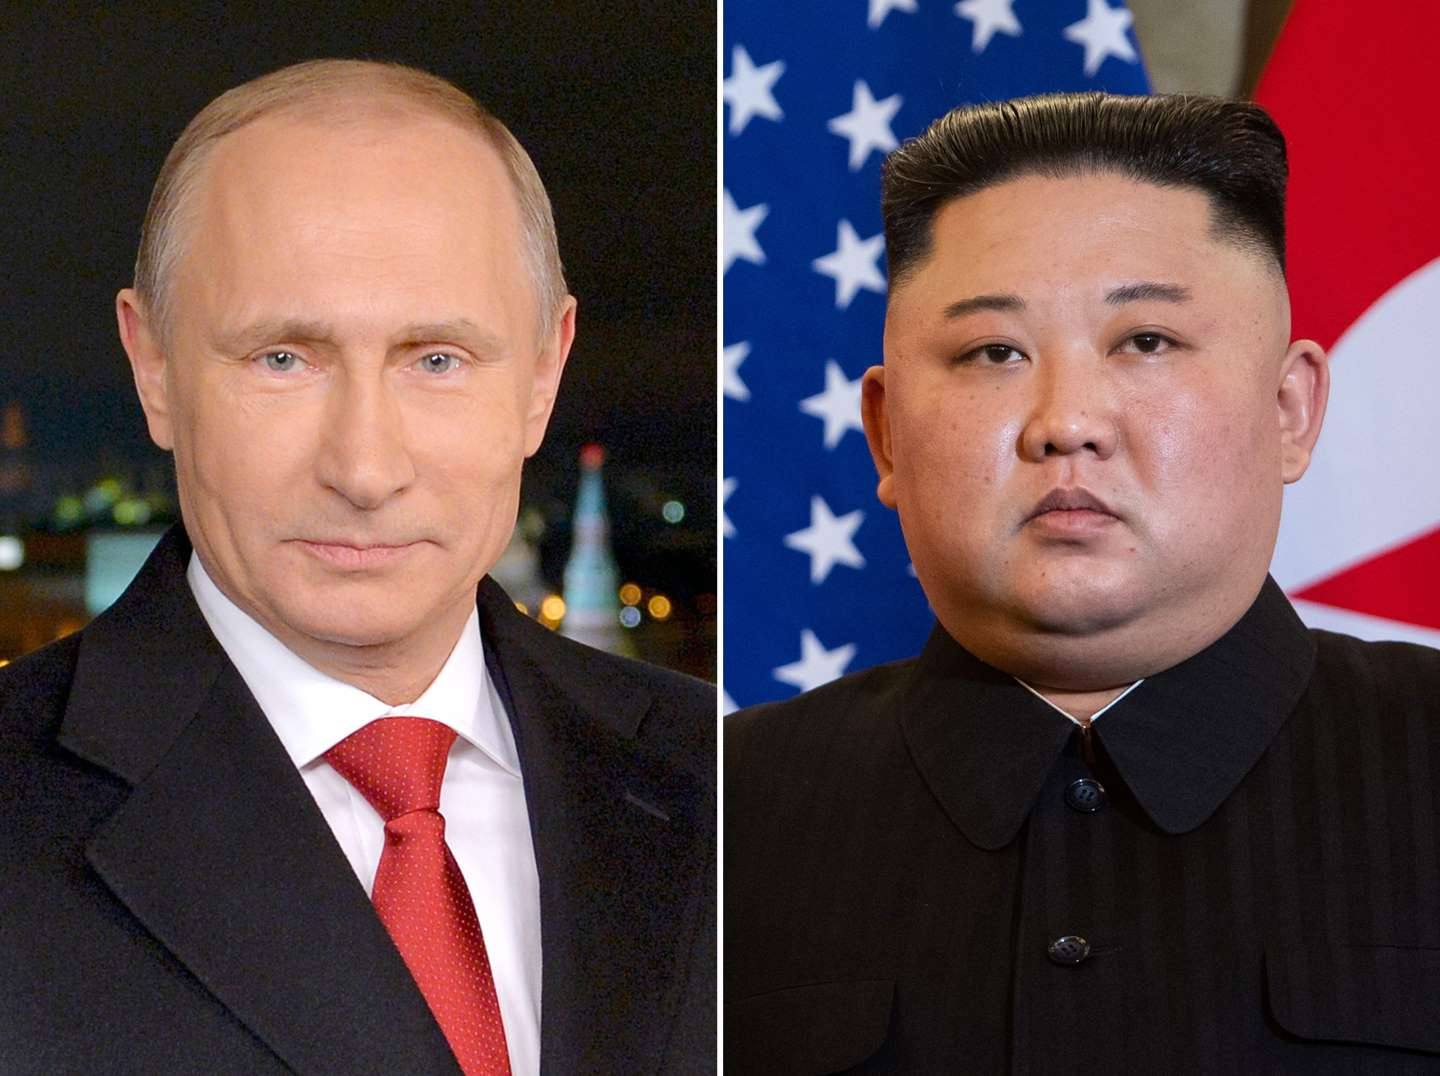 N.Korea's Kim Jong Un to meet Putin in Russia on Thursday - report